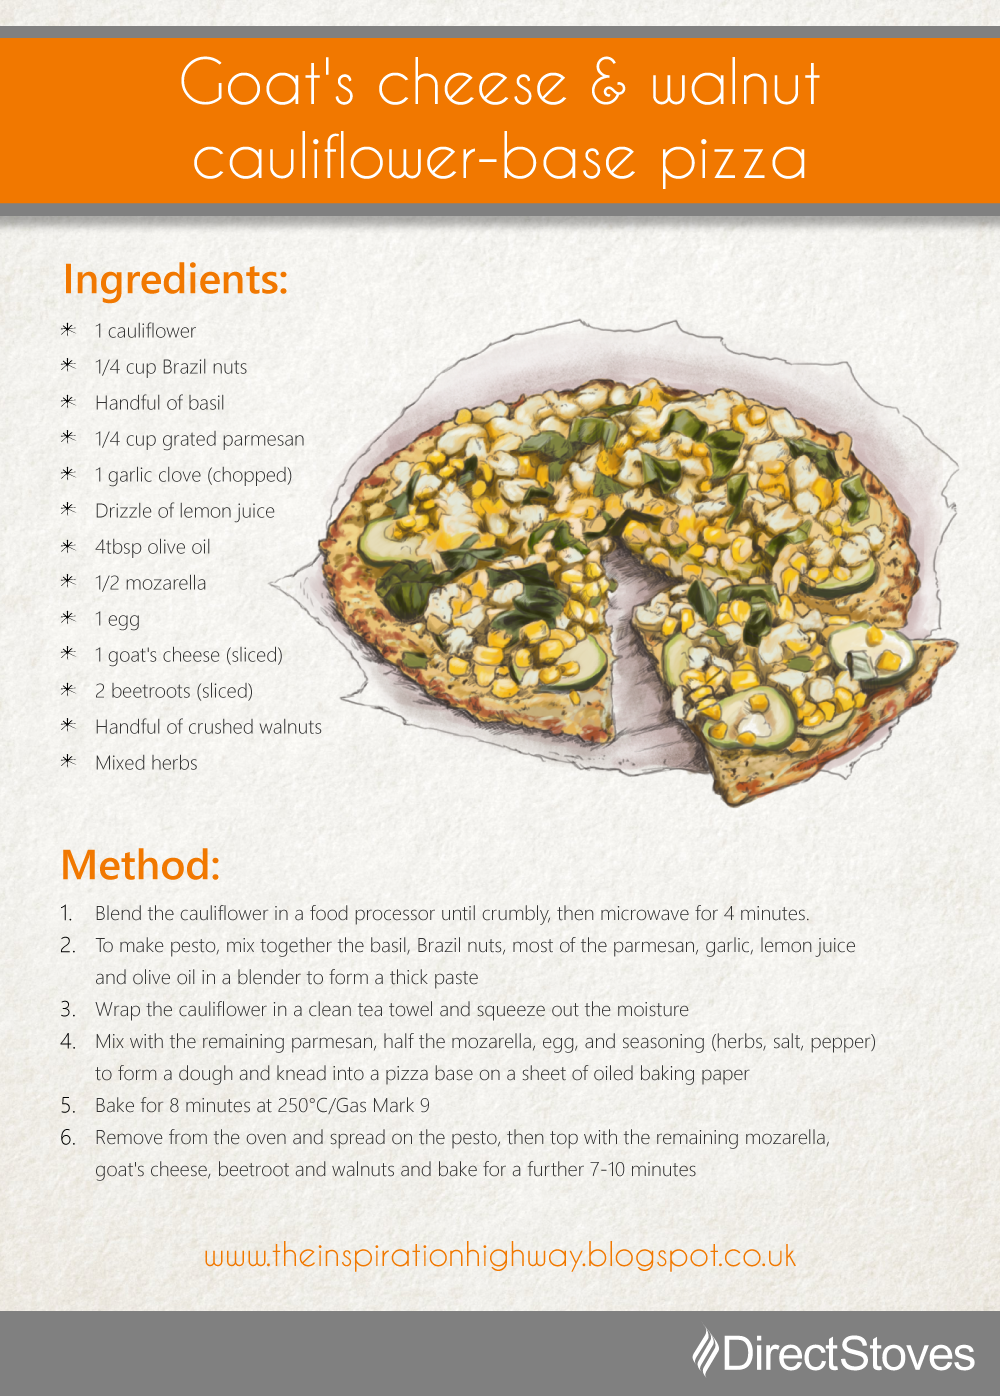 Pizza recipe card: Goat's cheese & walnut cauliflower-base pizza